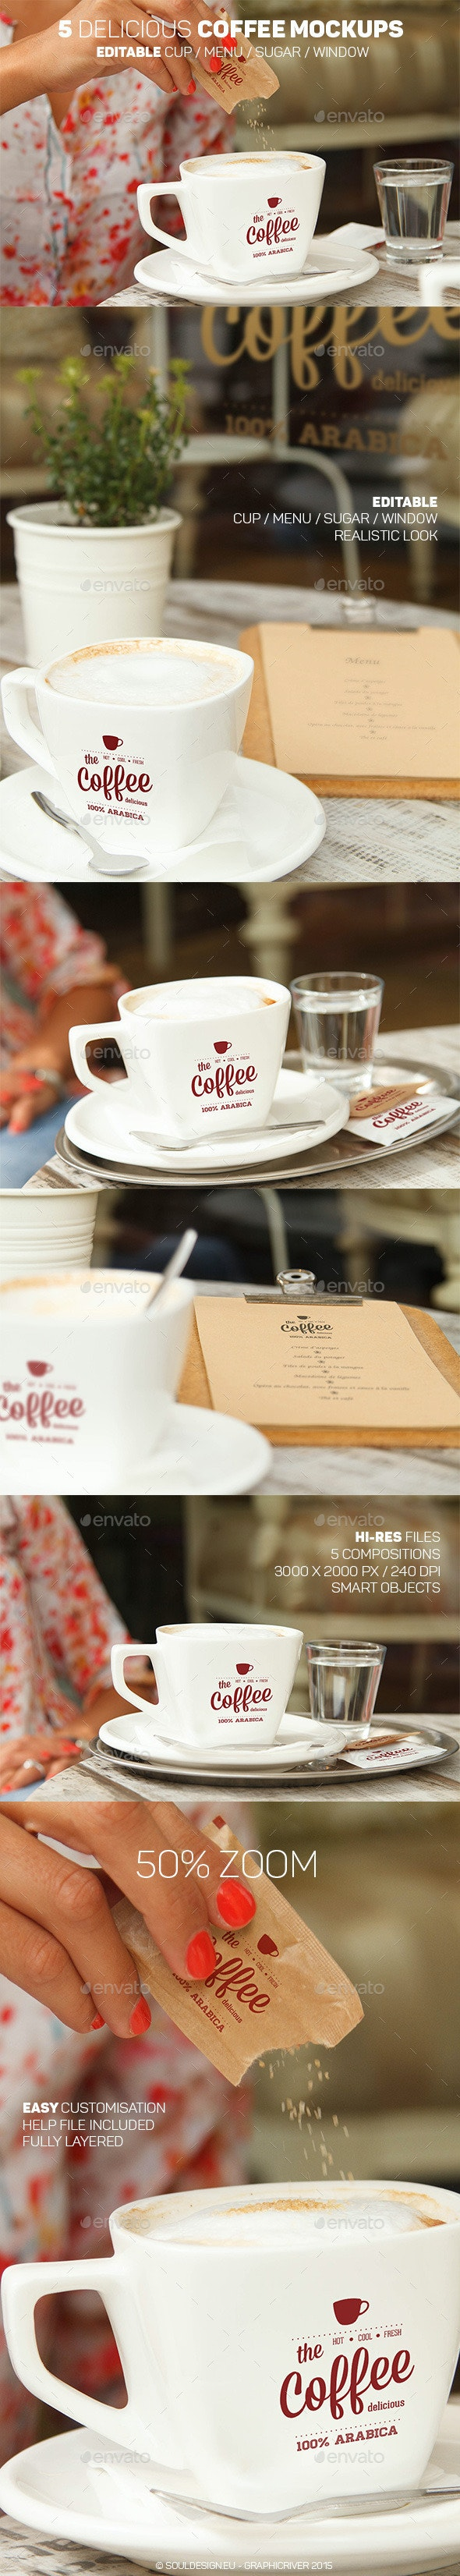 5 Delicious Coffee Mockups - Logo Product Mock-Ups